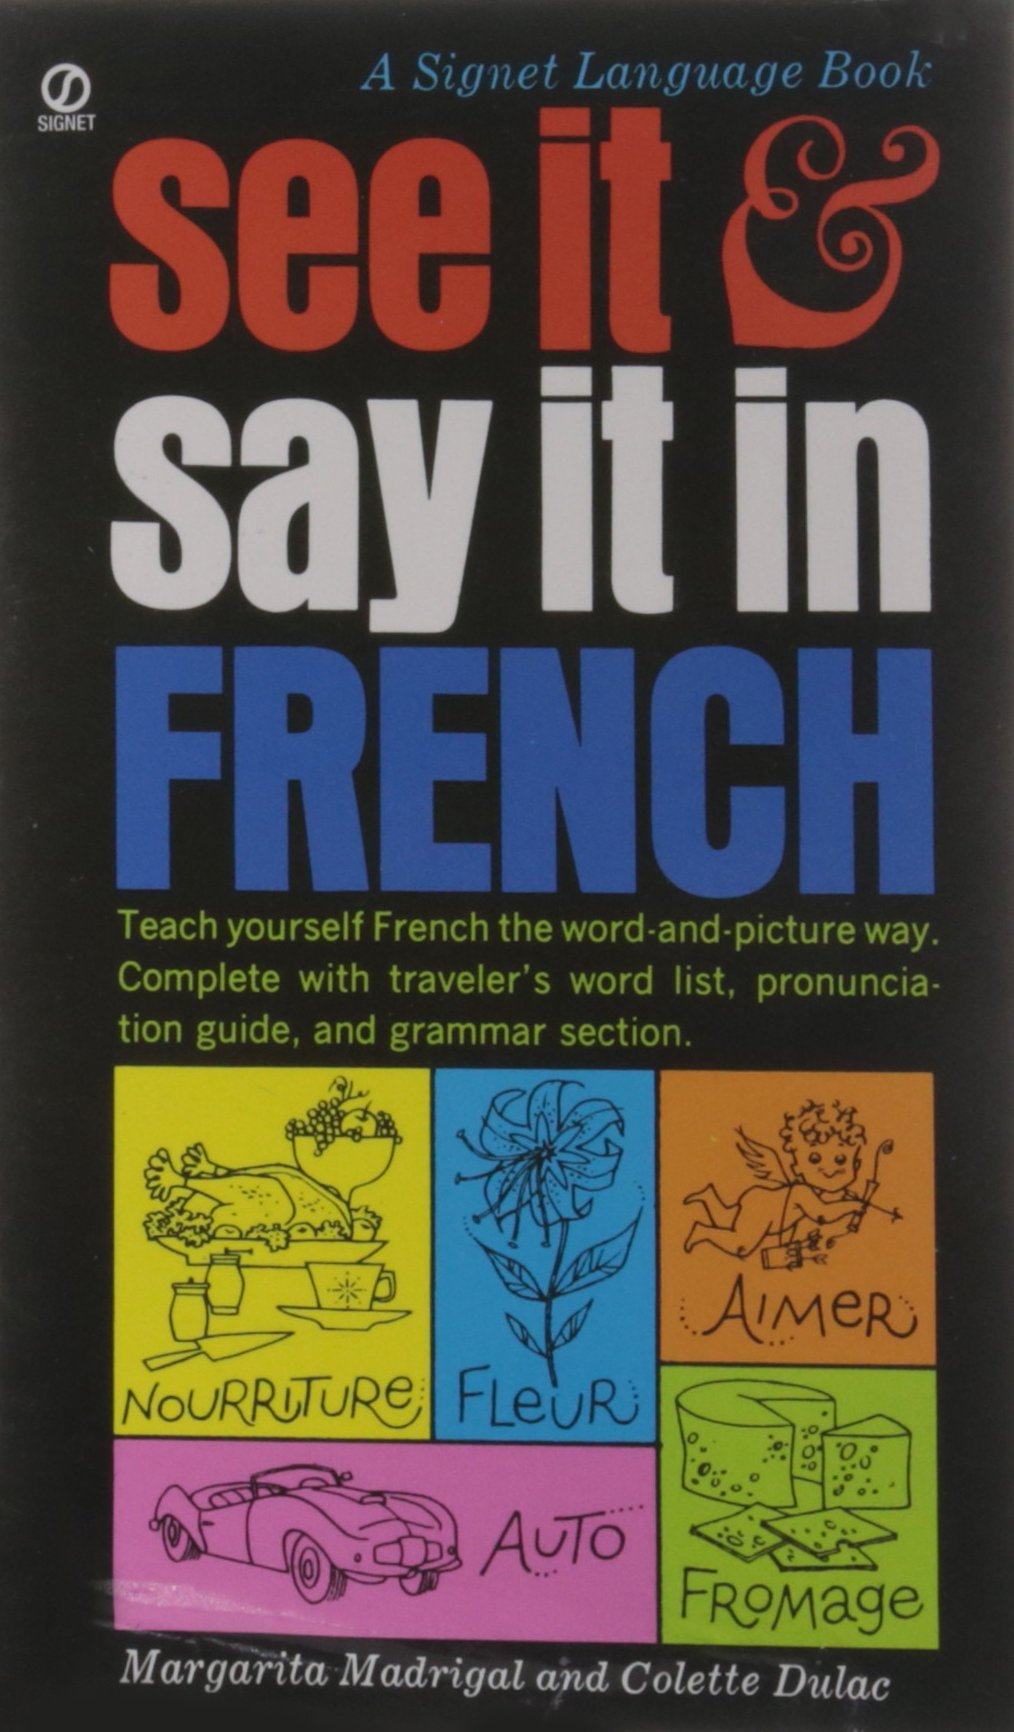 See it and say it in french a beginners guide to learning french see it and say it in french a beginners guide to learning french the word and picture way margarita madrigal colette dulac 9780451163479 amazon rubansaba